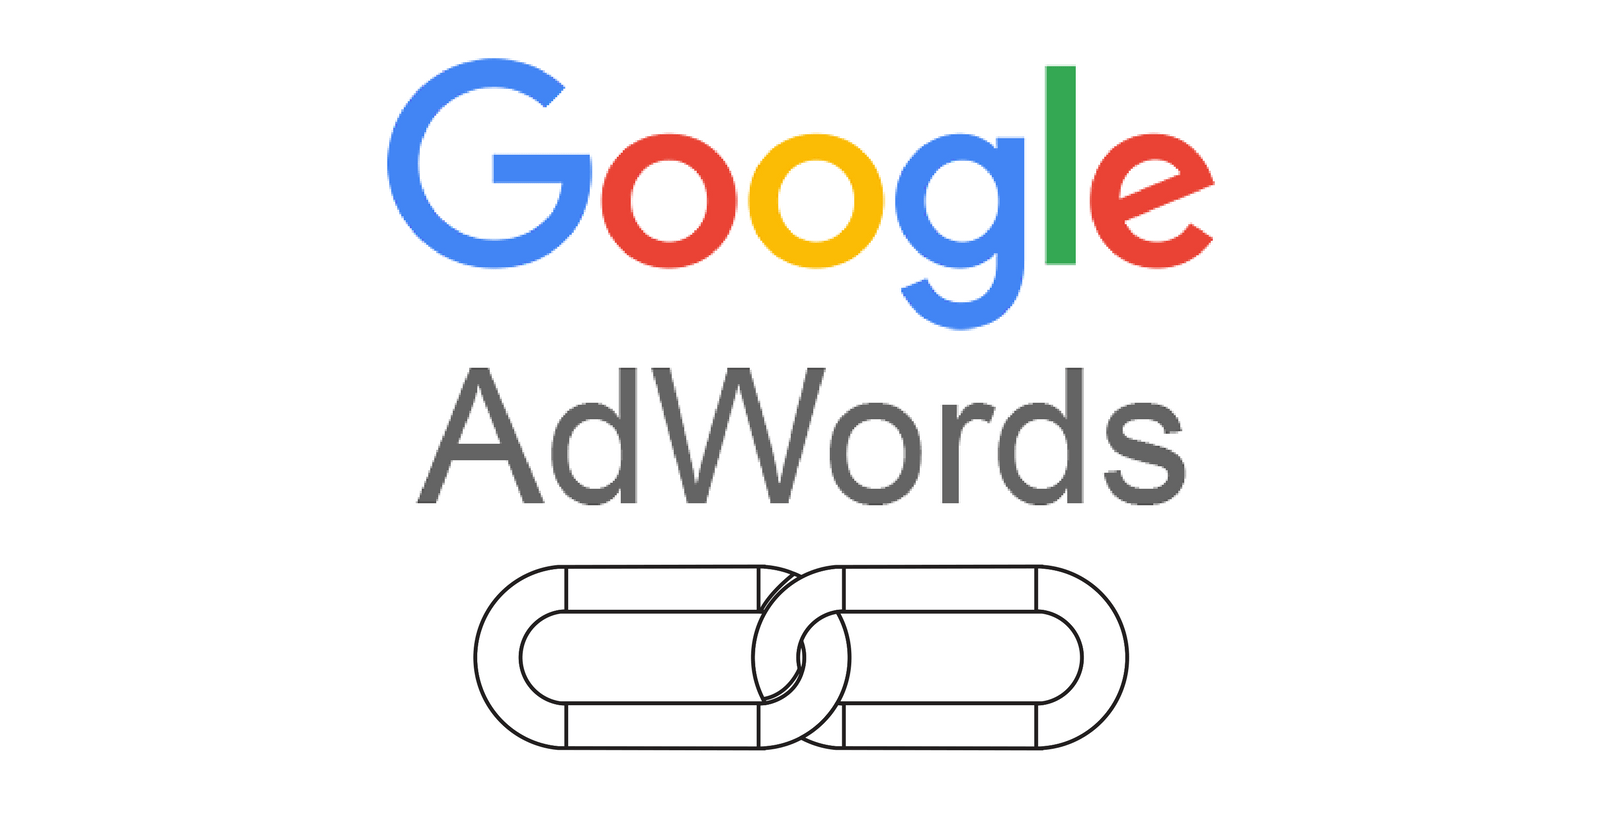 Google AdWords Integrates With Google Optimize and Google Surveys 360 - Search Engine Journal